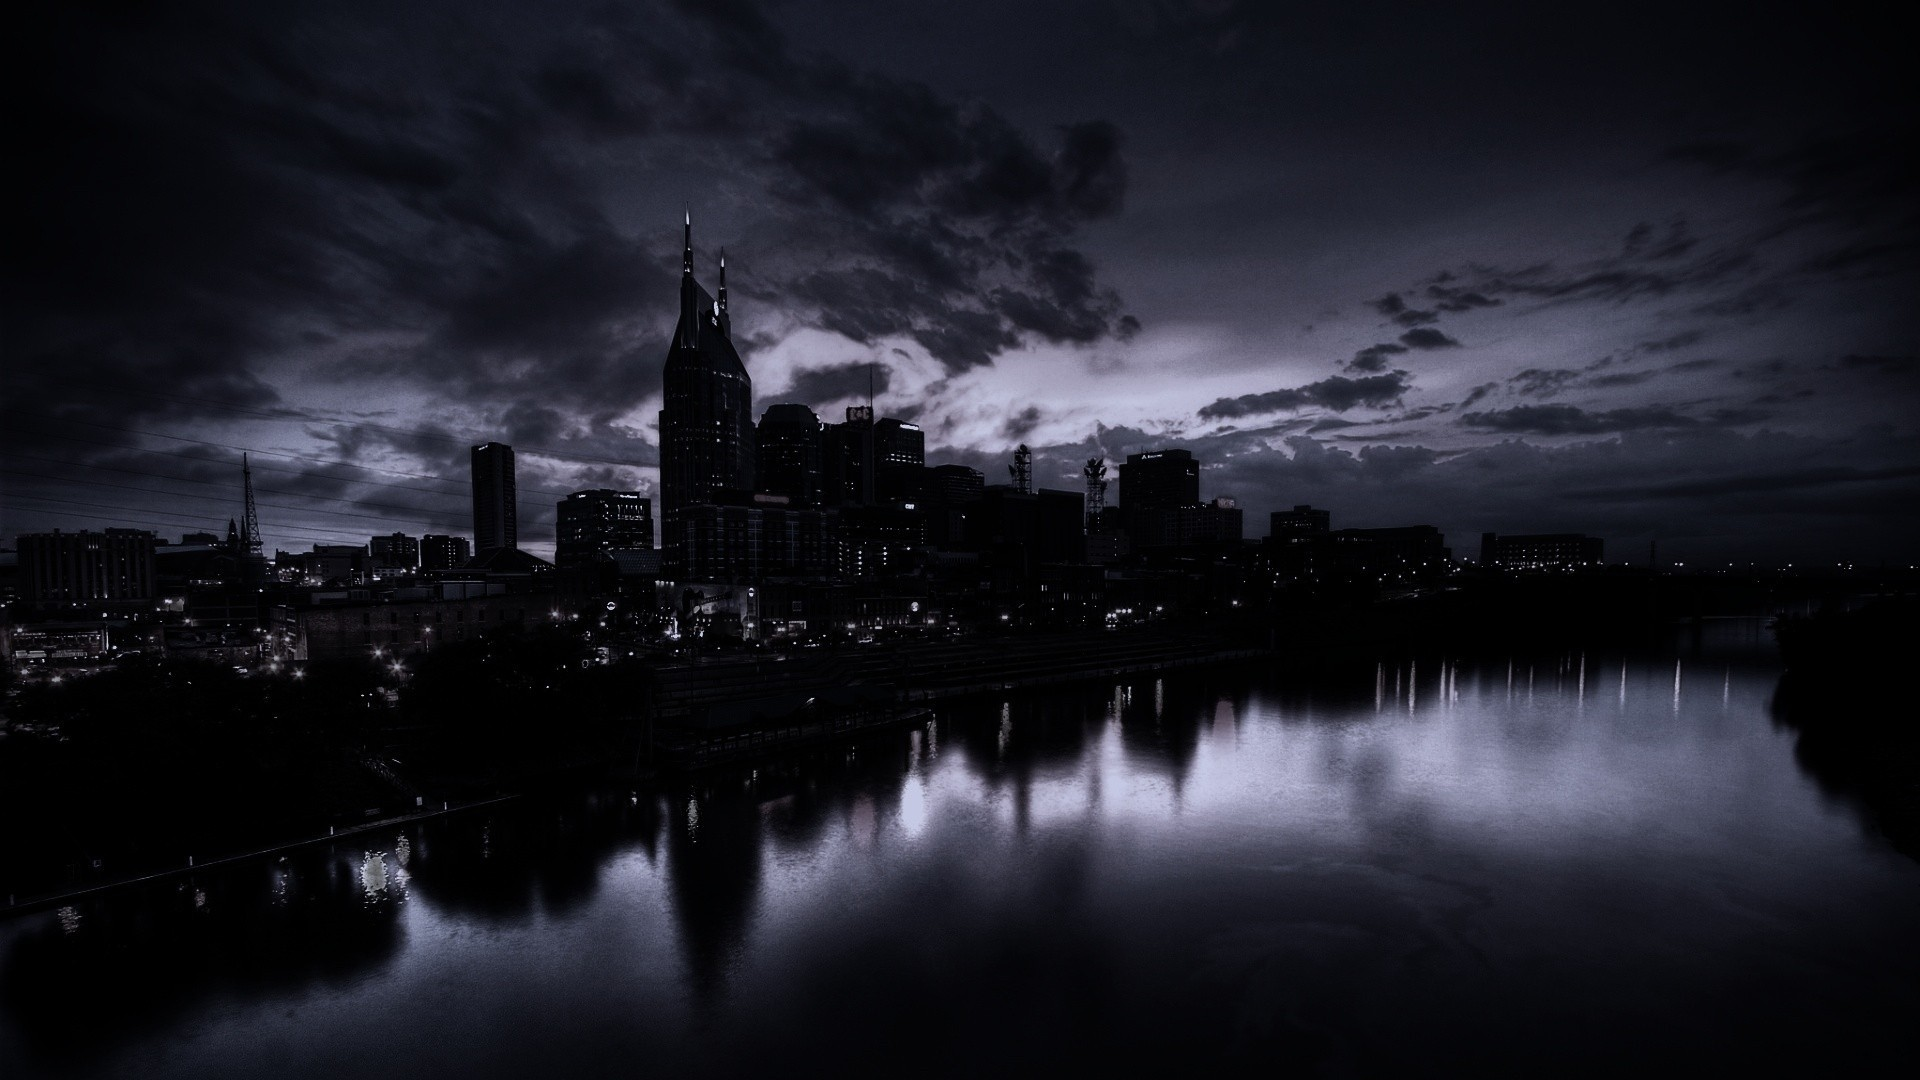 dark city wallpaper 1920x1080 1